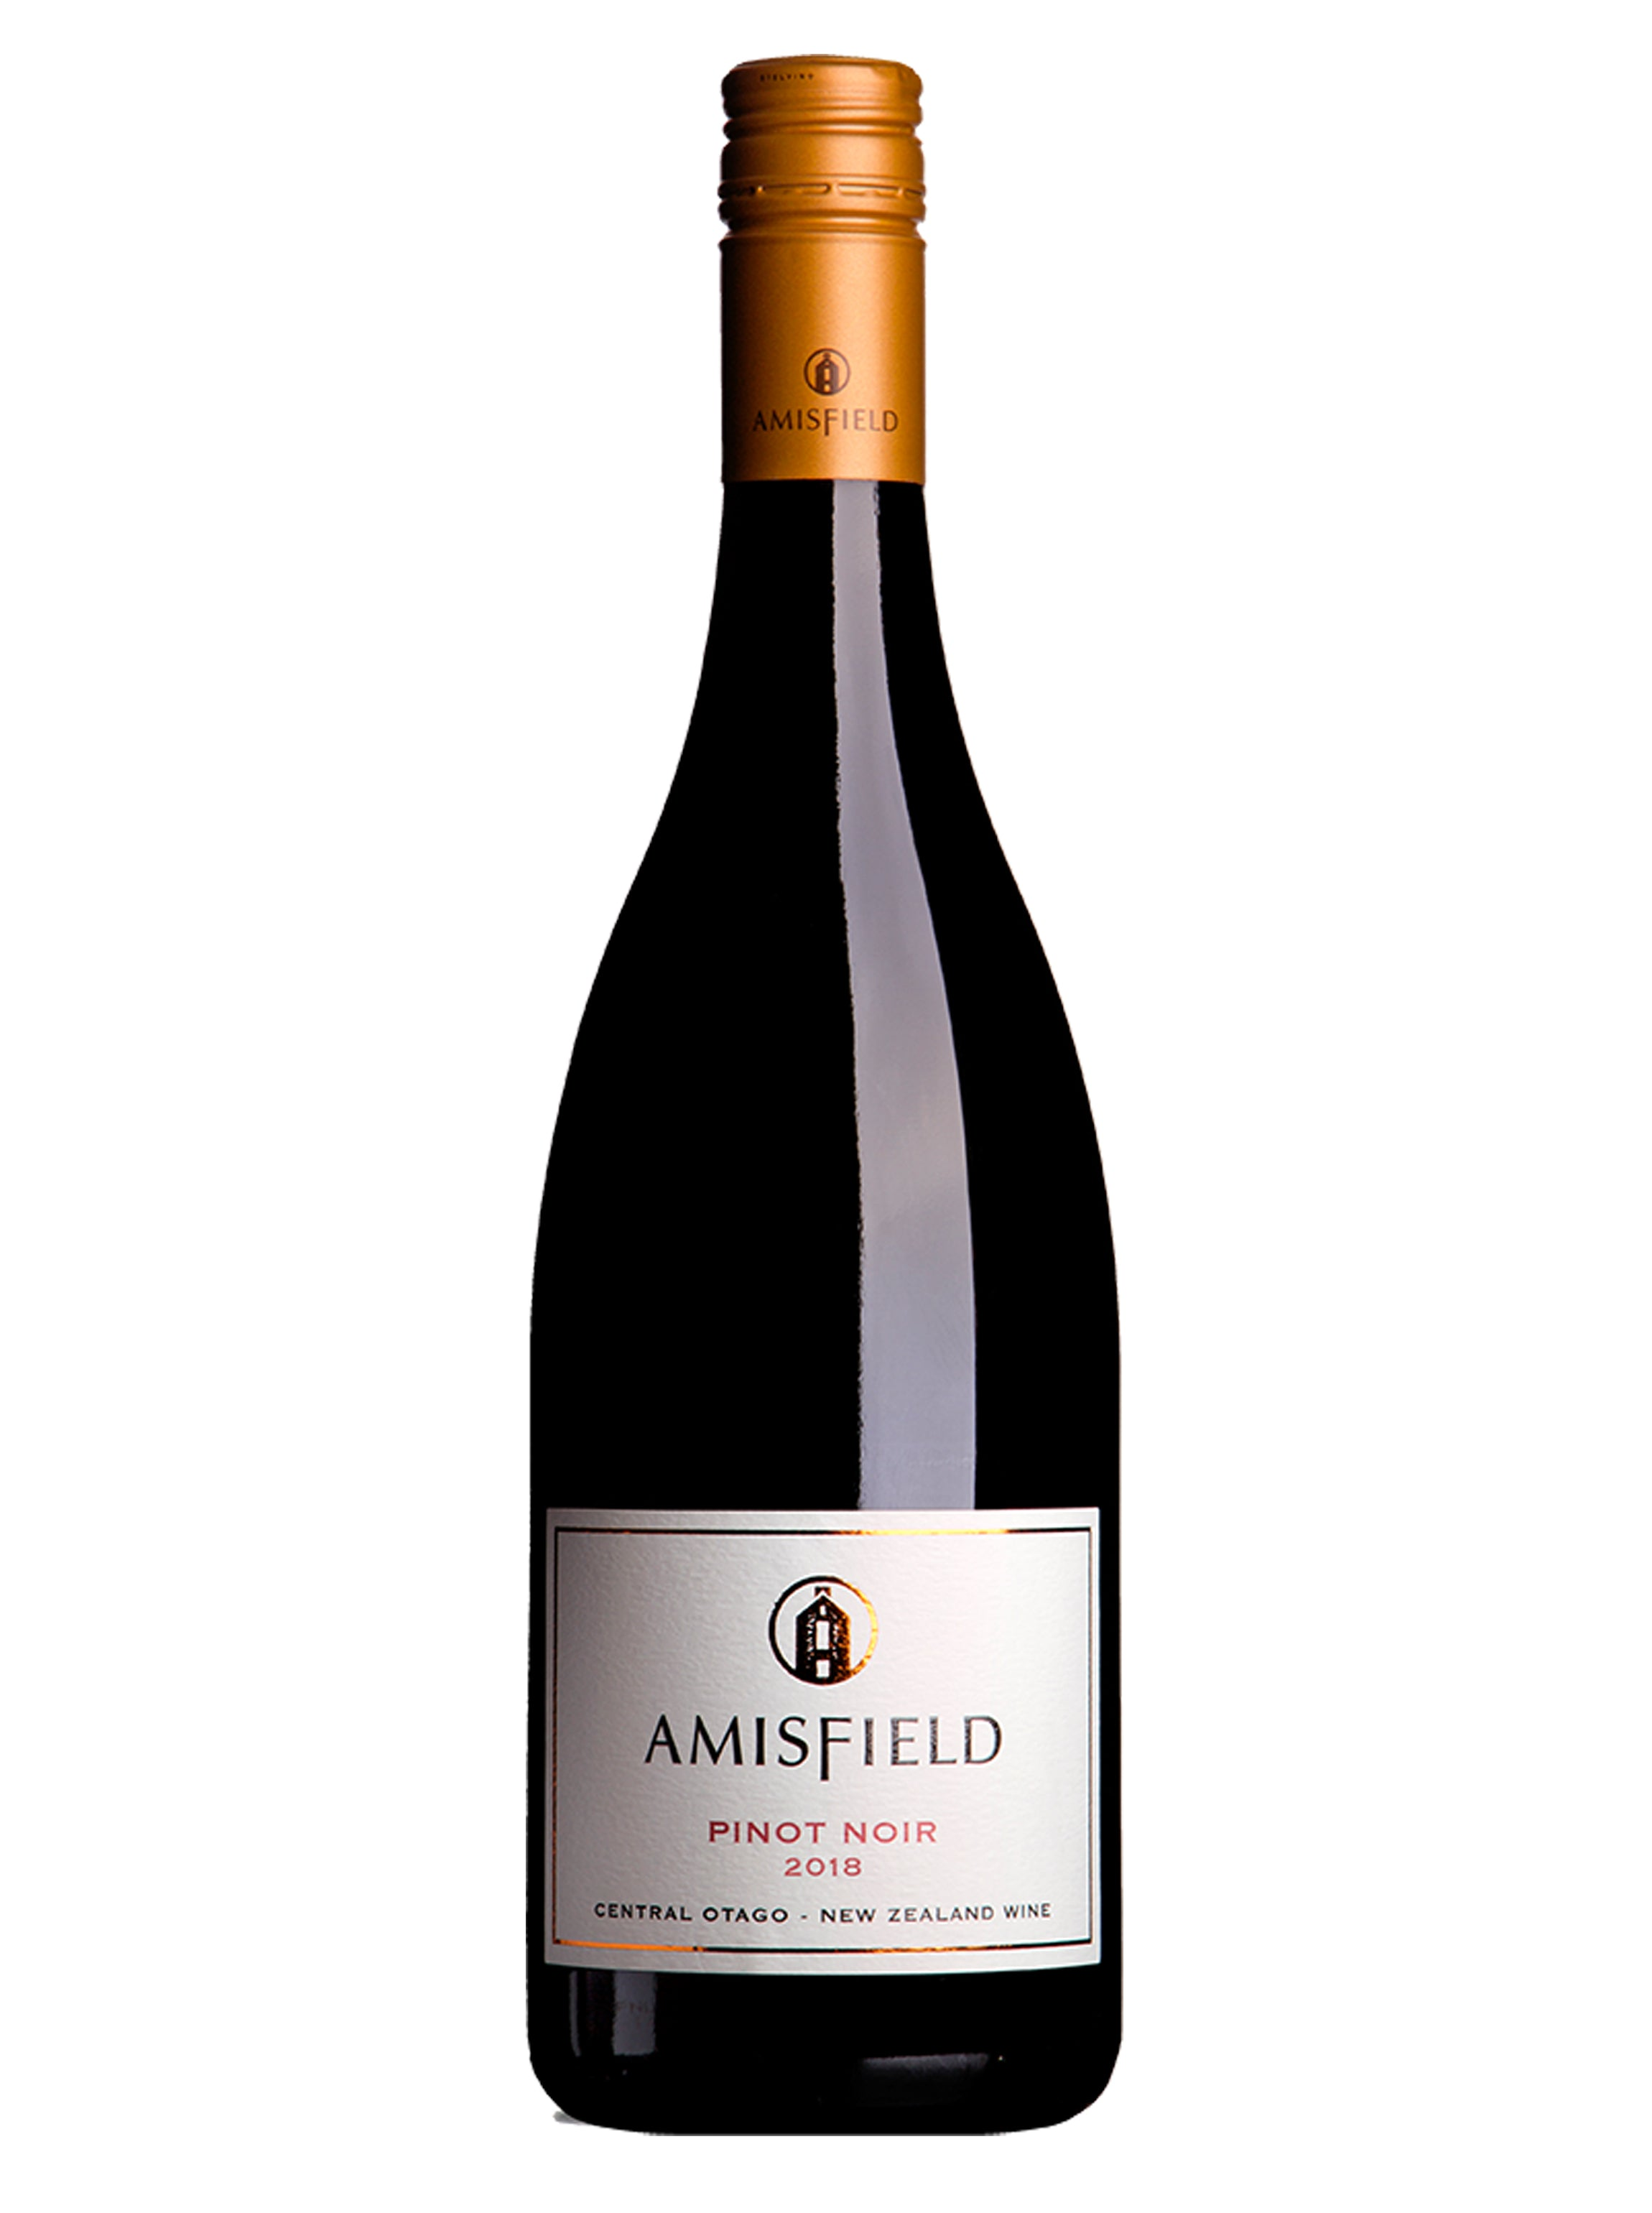 New Zealand Wine, Central Otago, Amisfield Pinot Noir, Amisfield Pinot Noir 2018, Central Otago Pinot Noir, Online Wine Shop, New Zealand Wine Shop